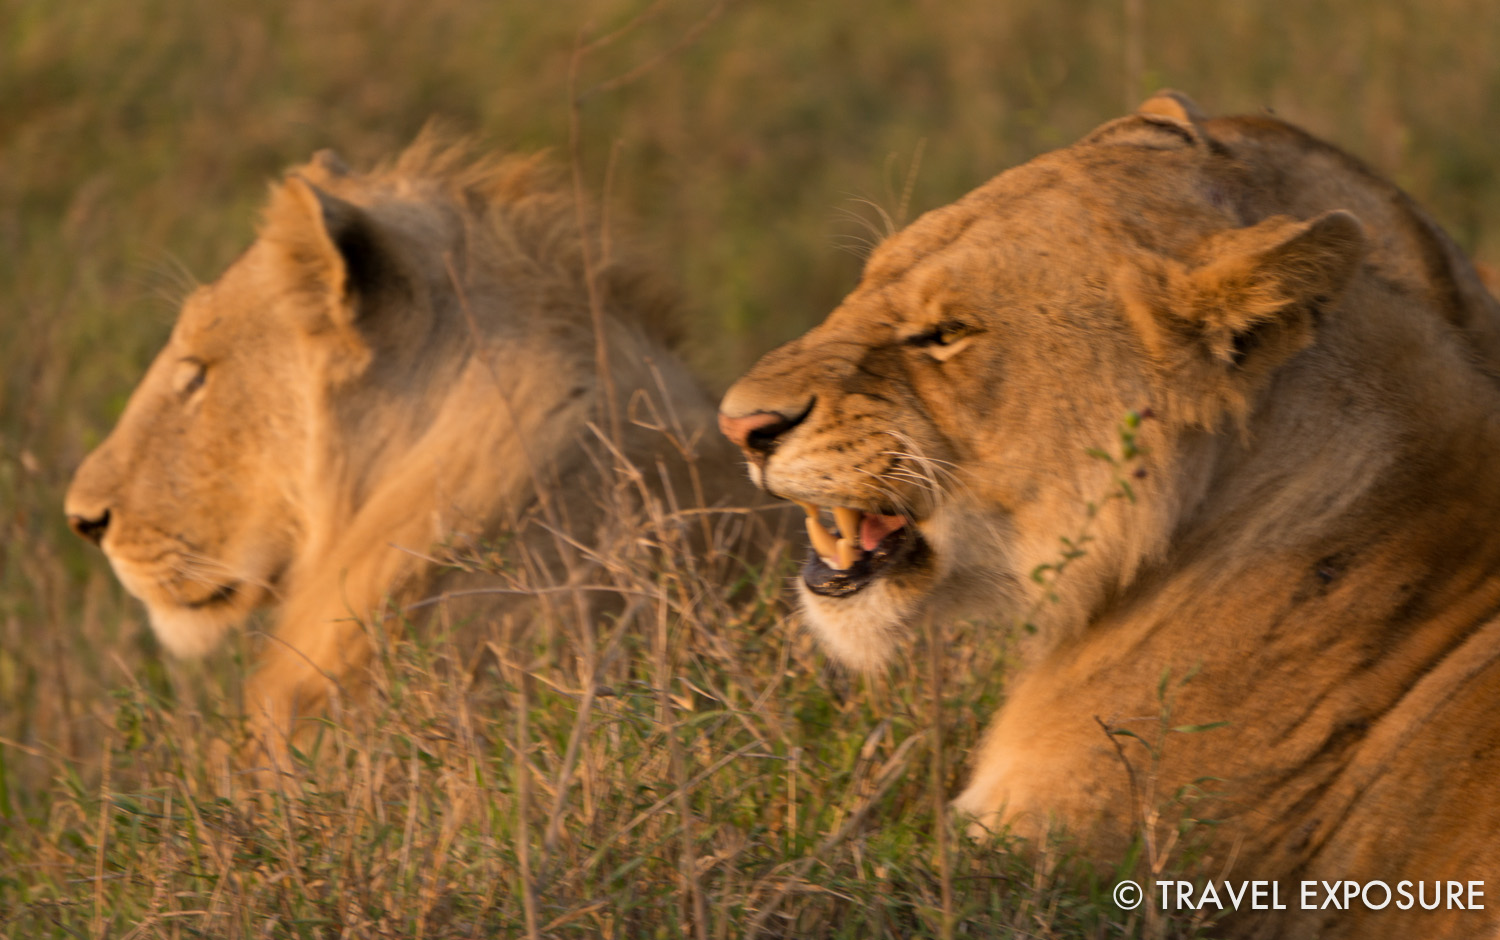 WEEK OF JULY 14 Two lions rest in the savanna in the Serengeti National Park in Tanzania.